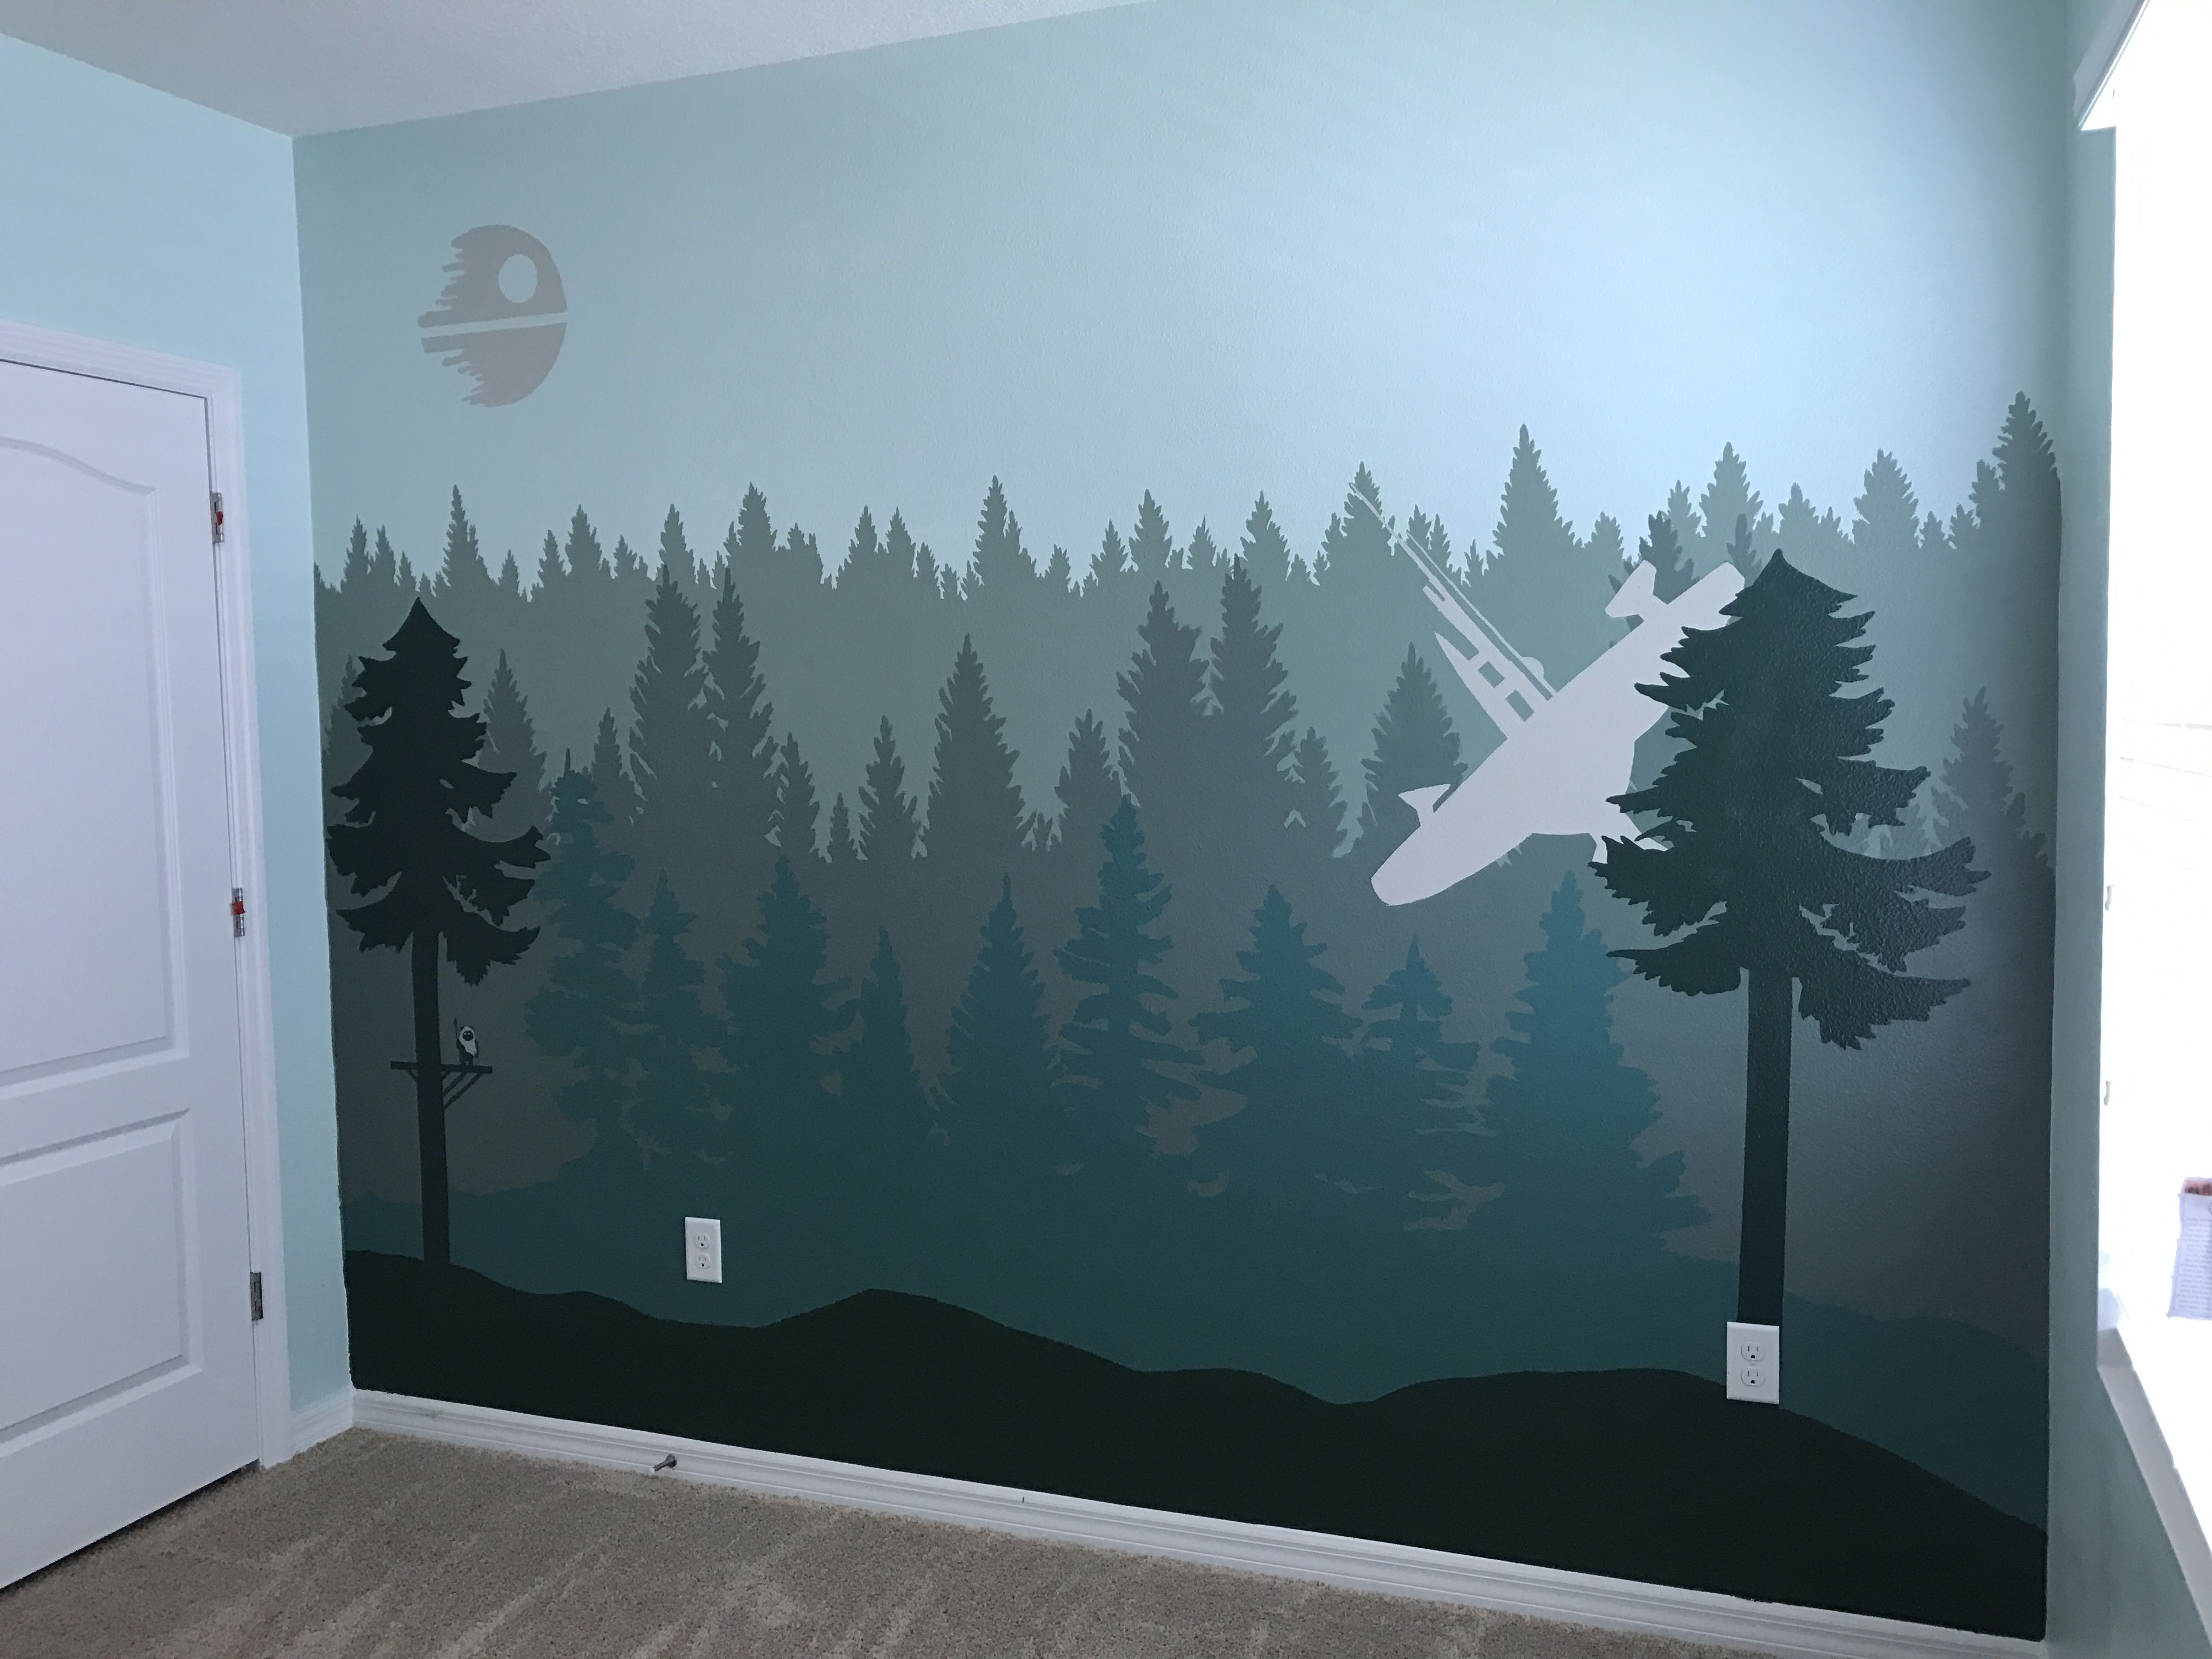 Related Image Star Wars Nursery Star Wars Bedroom Star